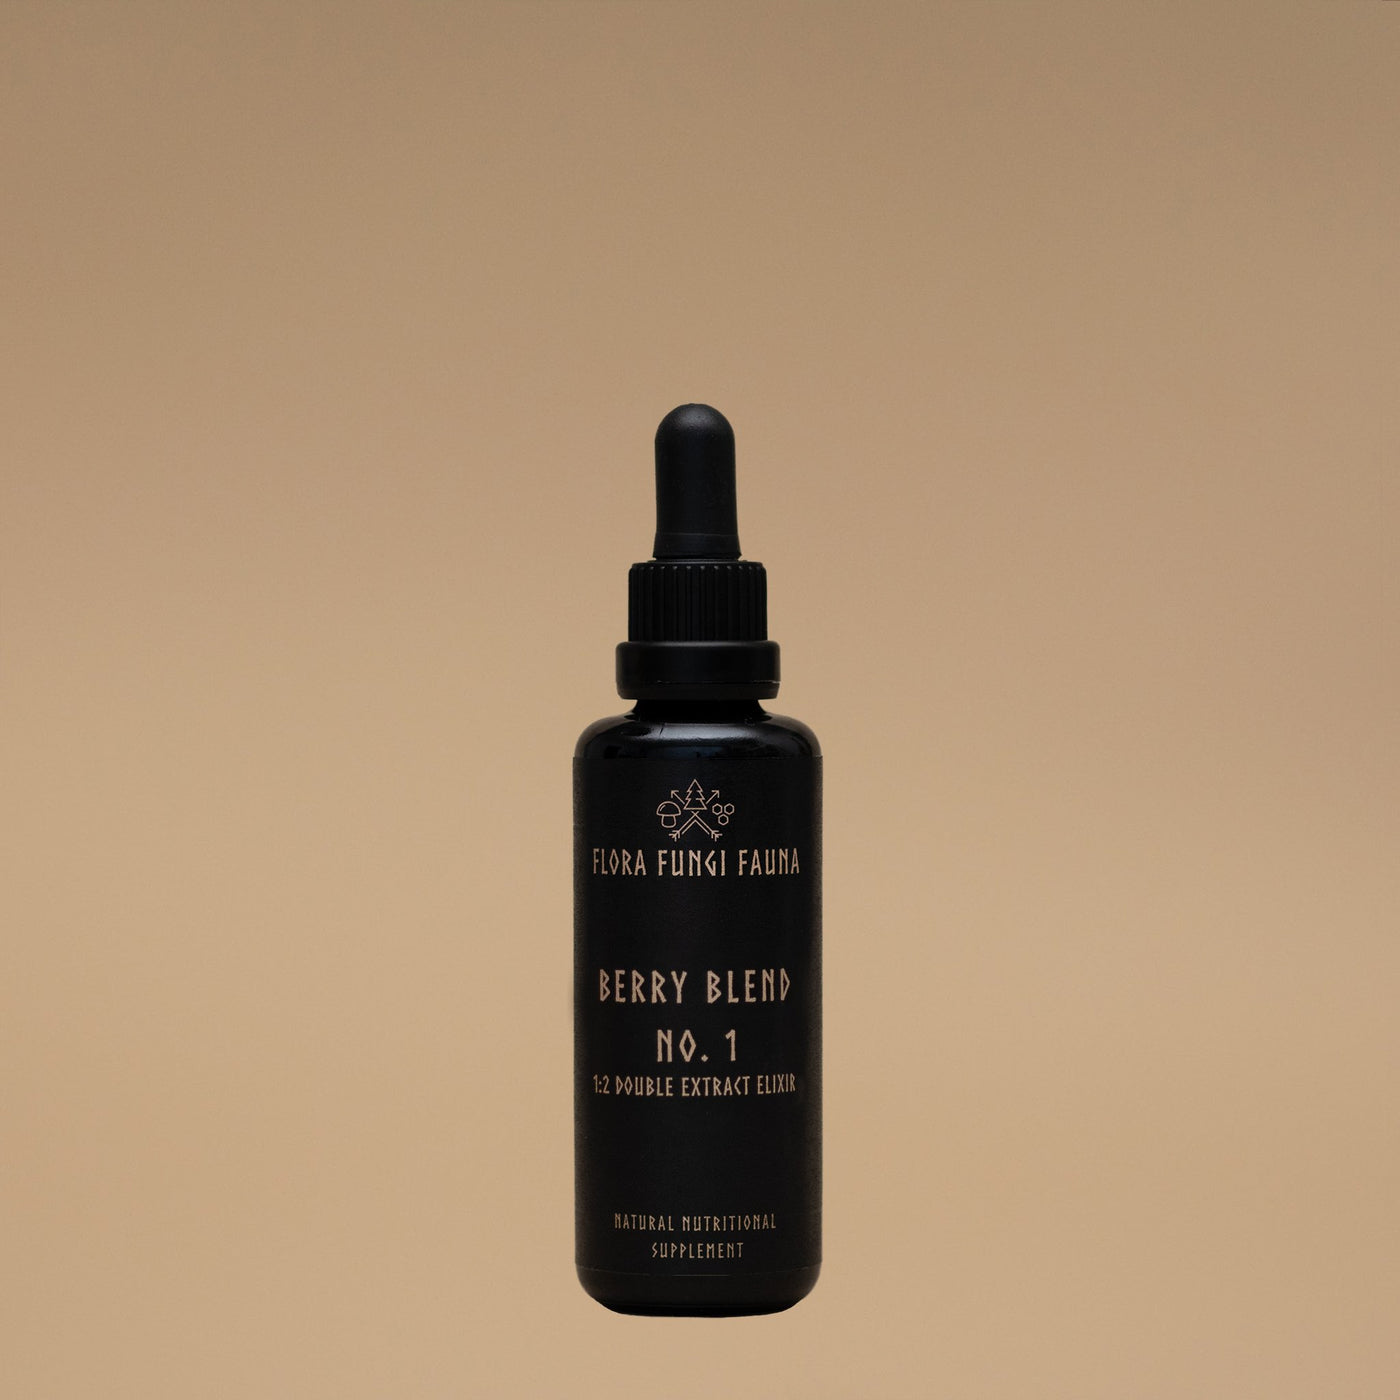 BERRY Blend No. 1 - 1:2 Double Extract Elixir, 50 ml